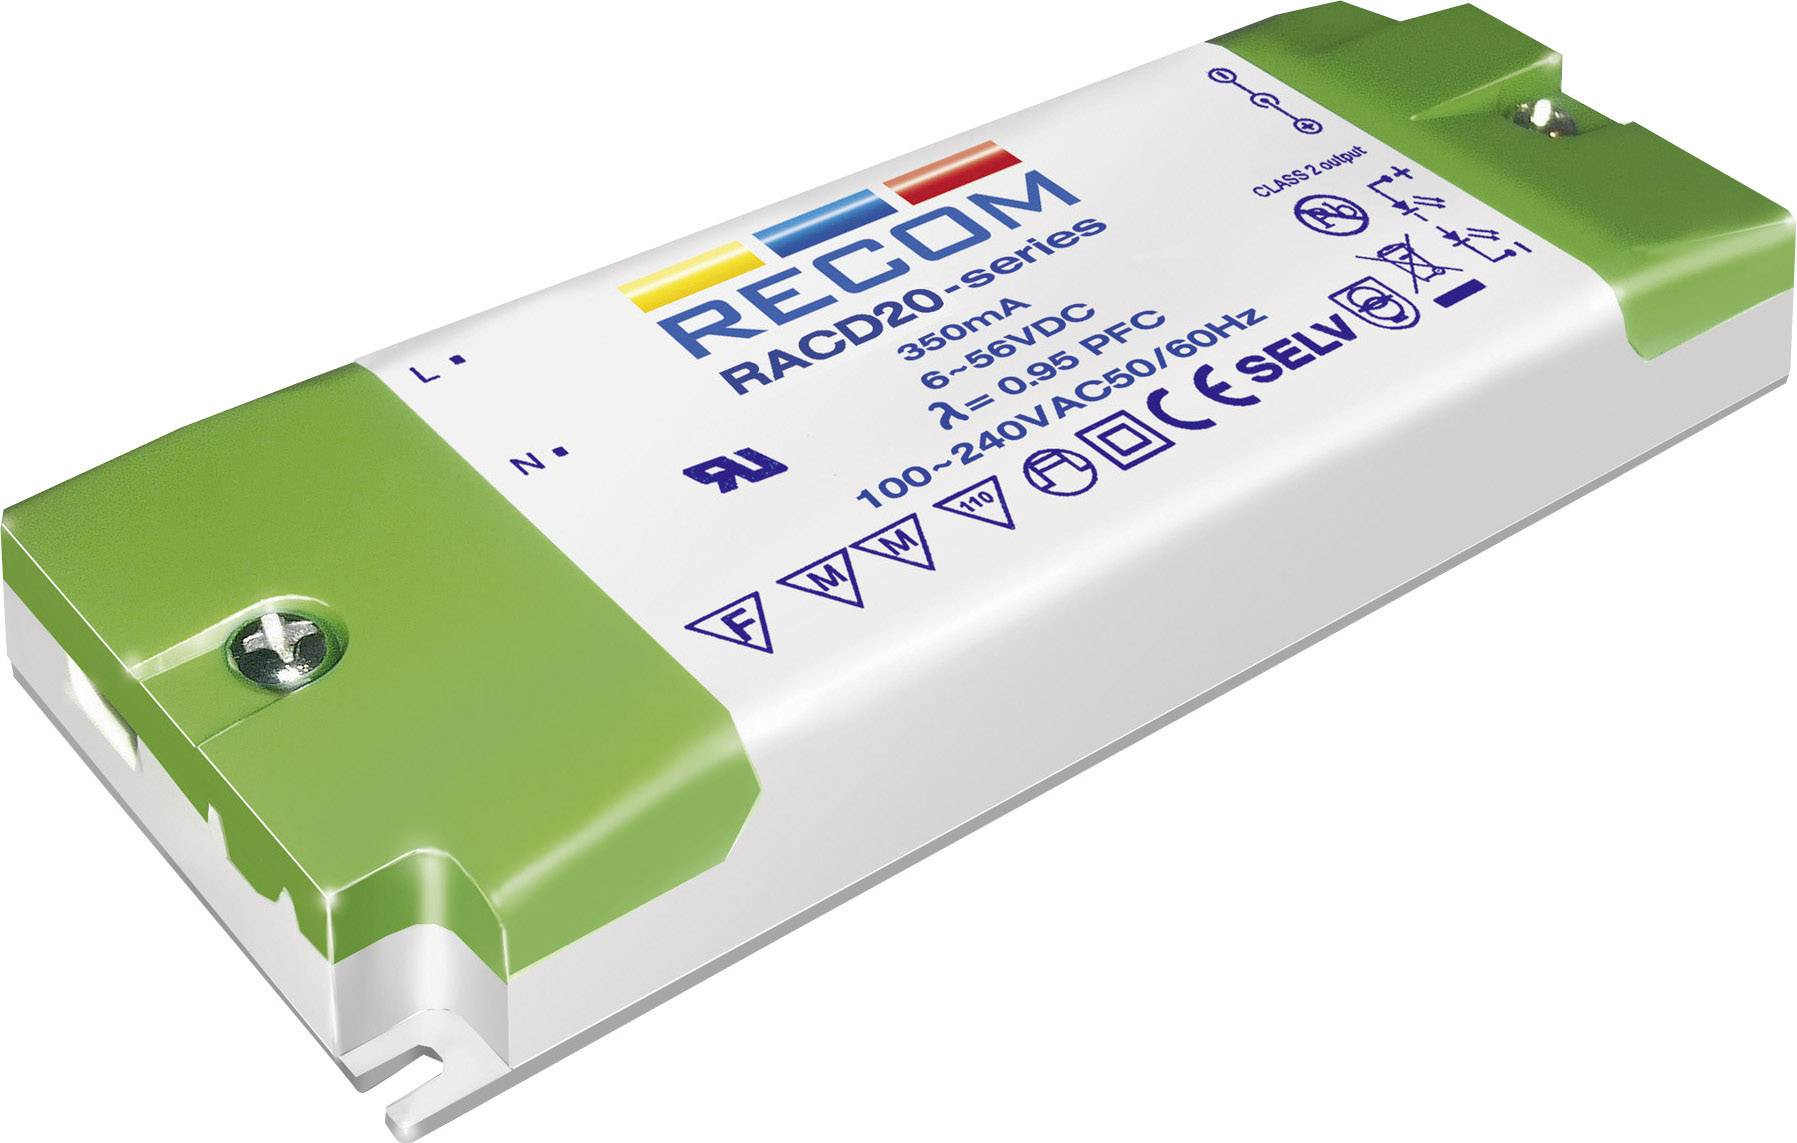 LED driver Recom Lighting RACD20-1050, 20 W (max), 1.05 A, 5 - 17 V/DC